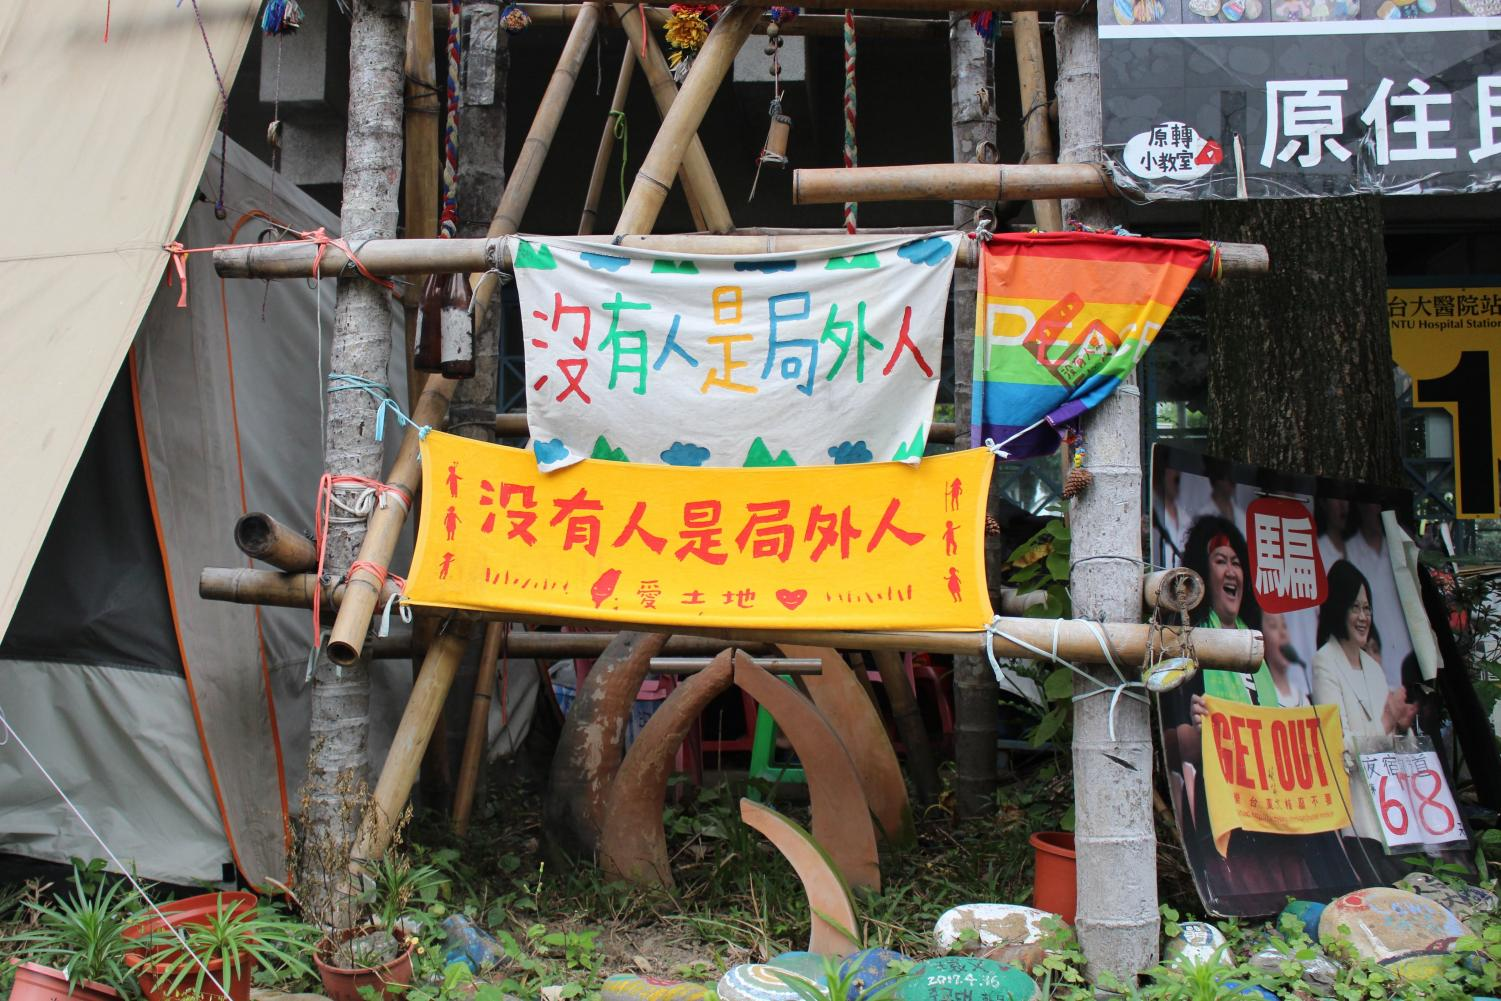 LGBTQ posters, banners, and art left at 288 Peace Memorial Park, where Taipei's first pride parade was held.